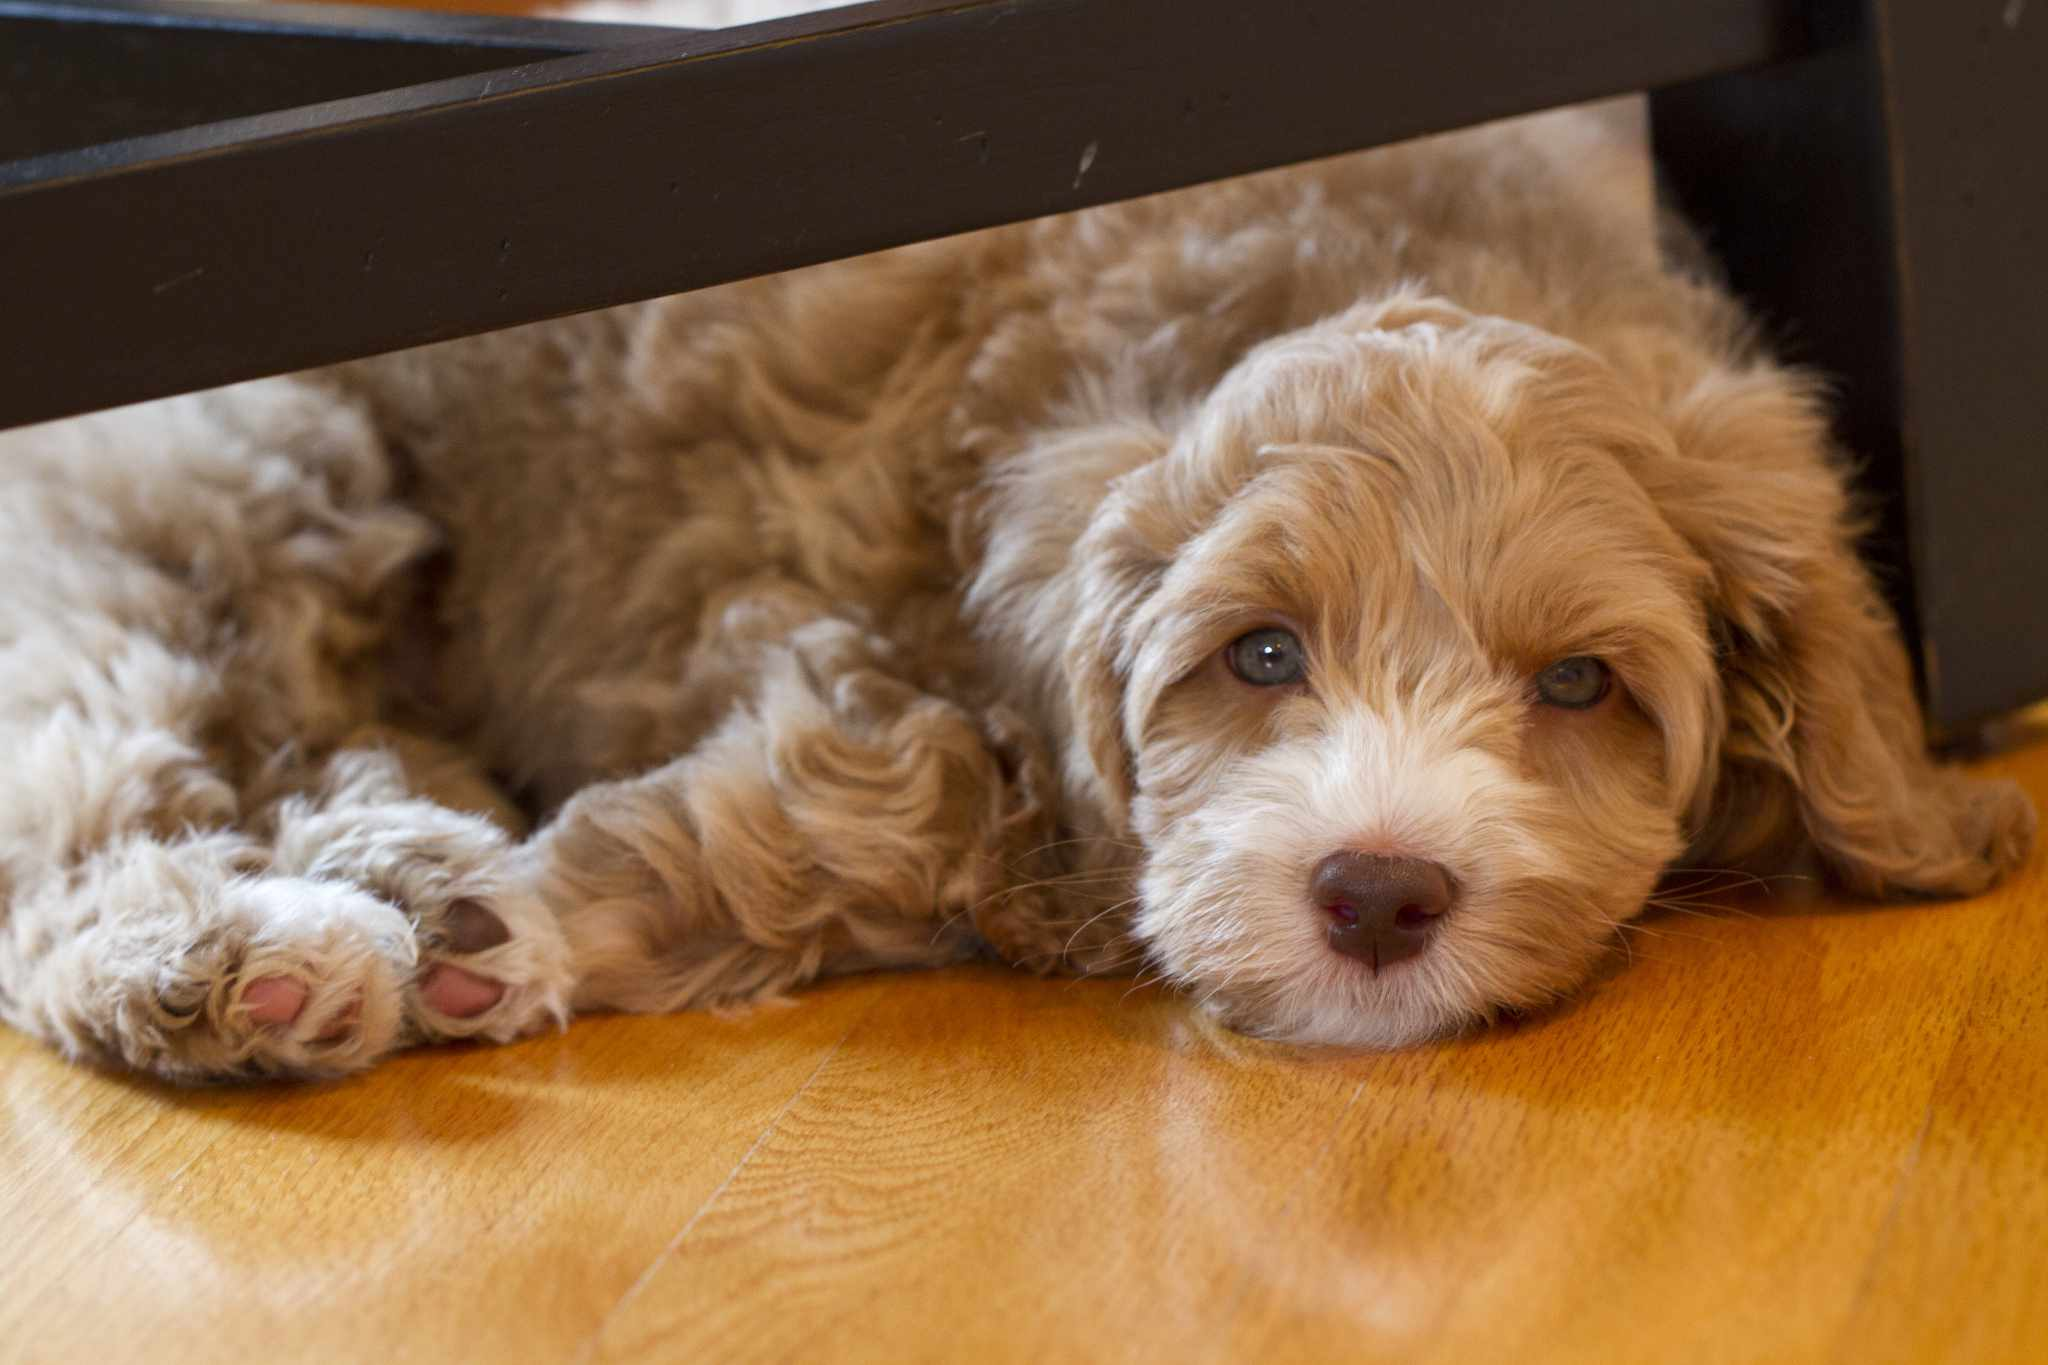 An Australian labradoodle puppy lounging.